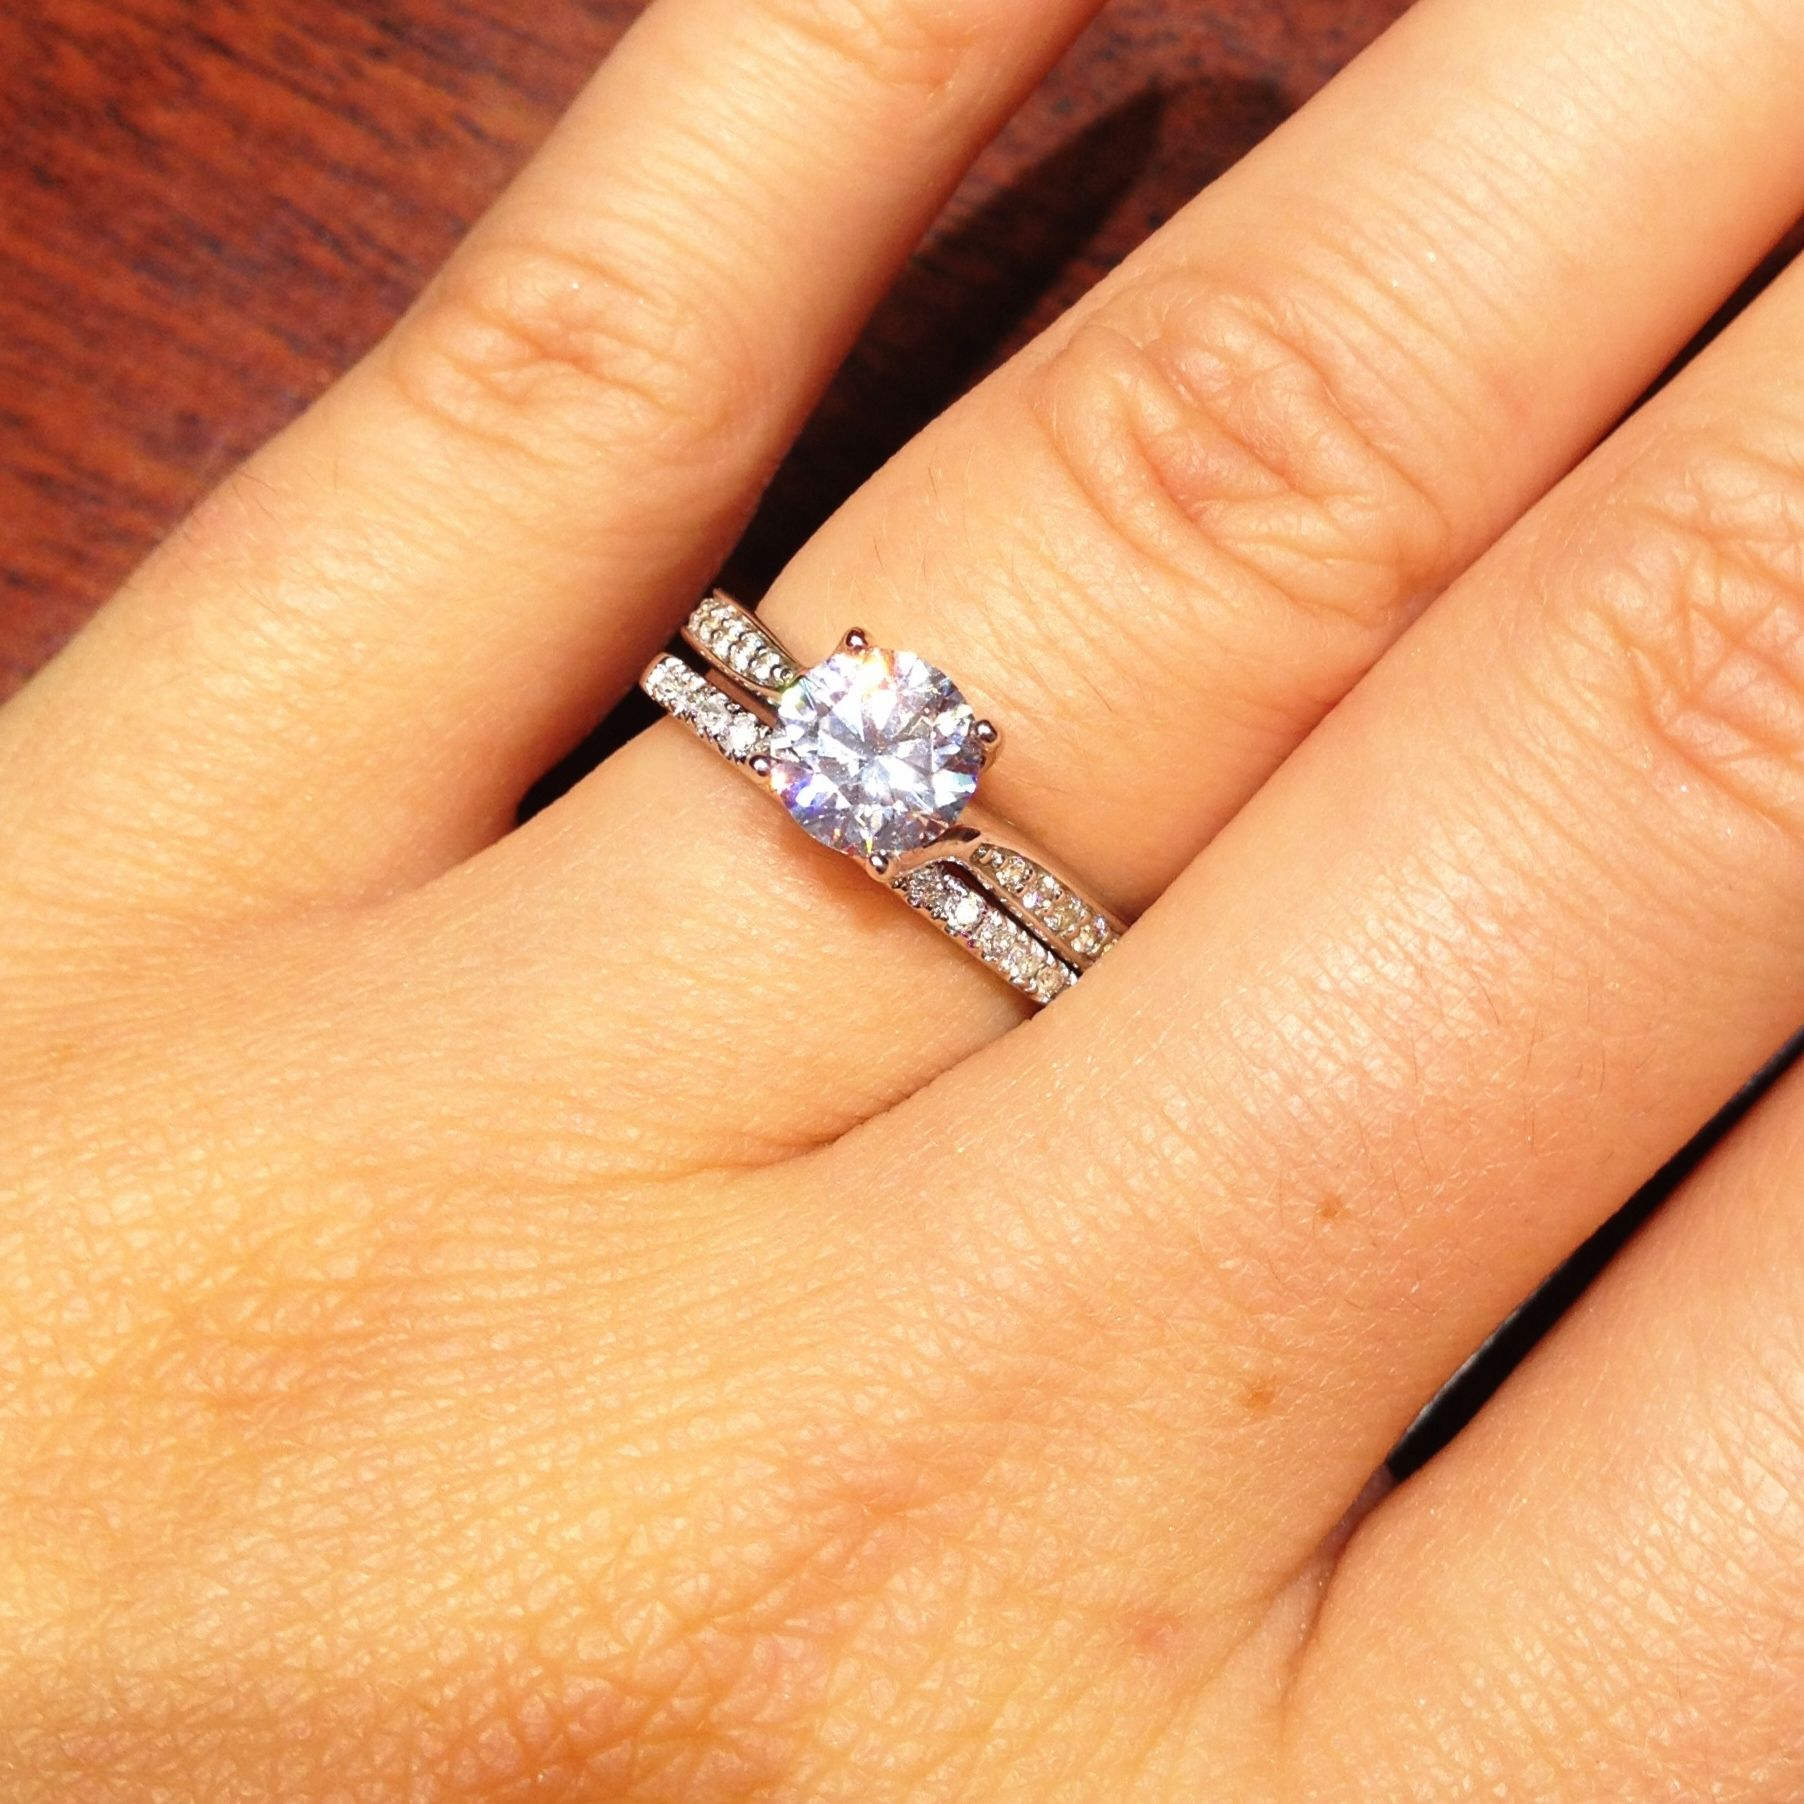 engagement ring wedding band wedding ring with band Tiffany solitaire with channelset band engagementring